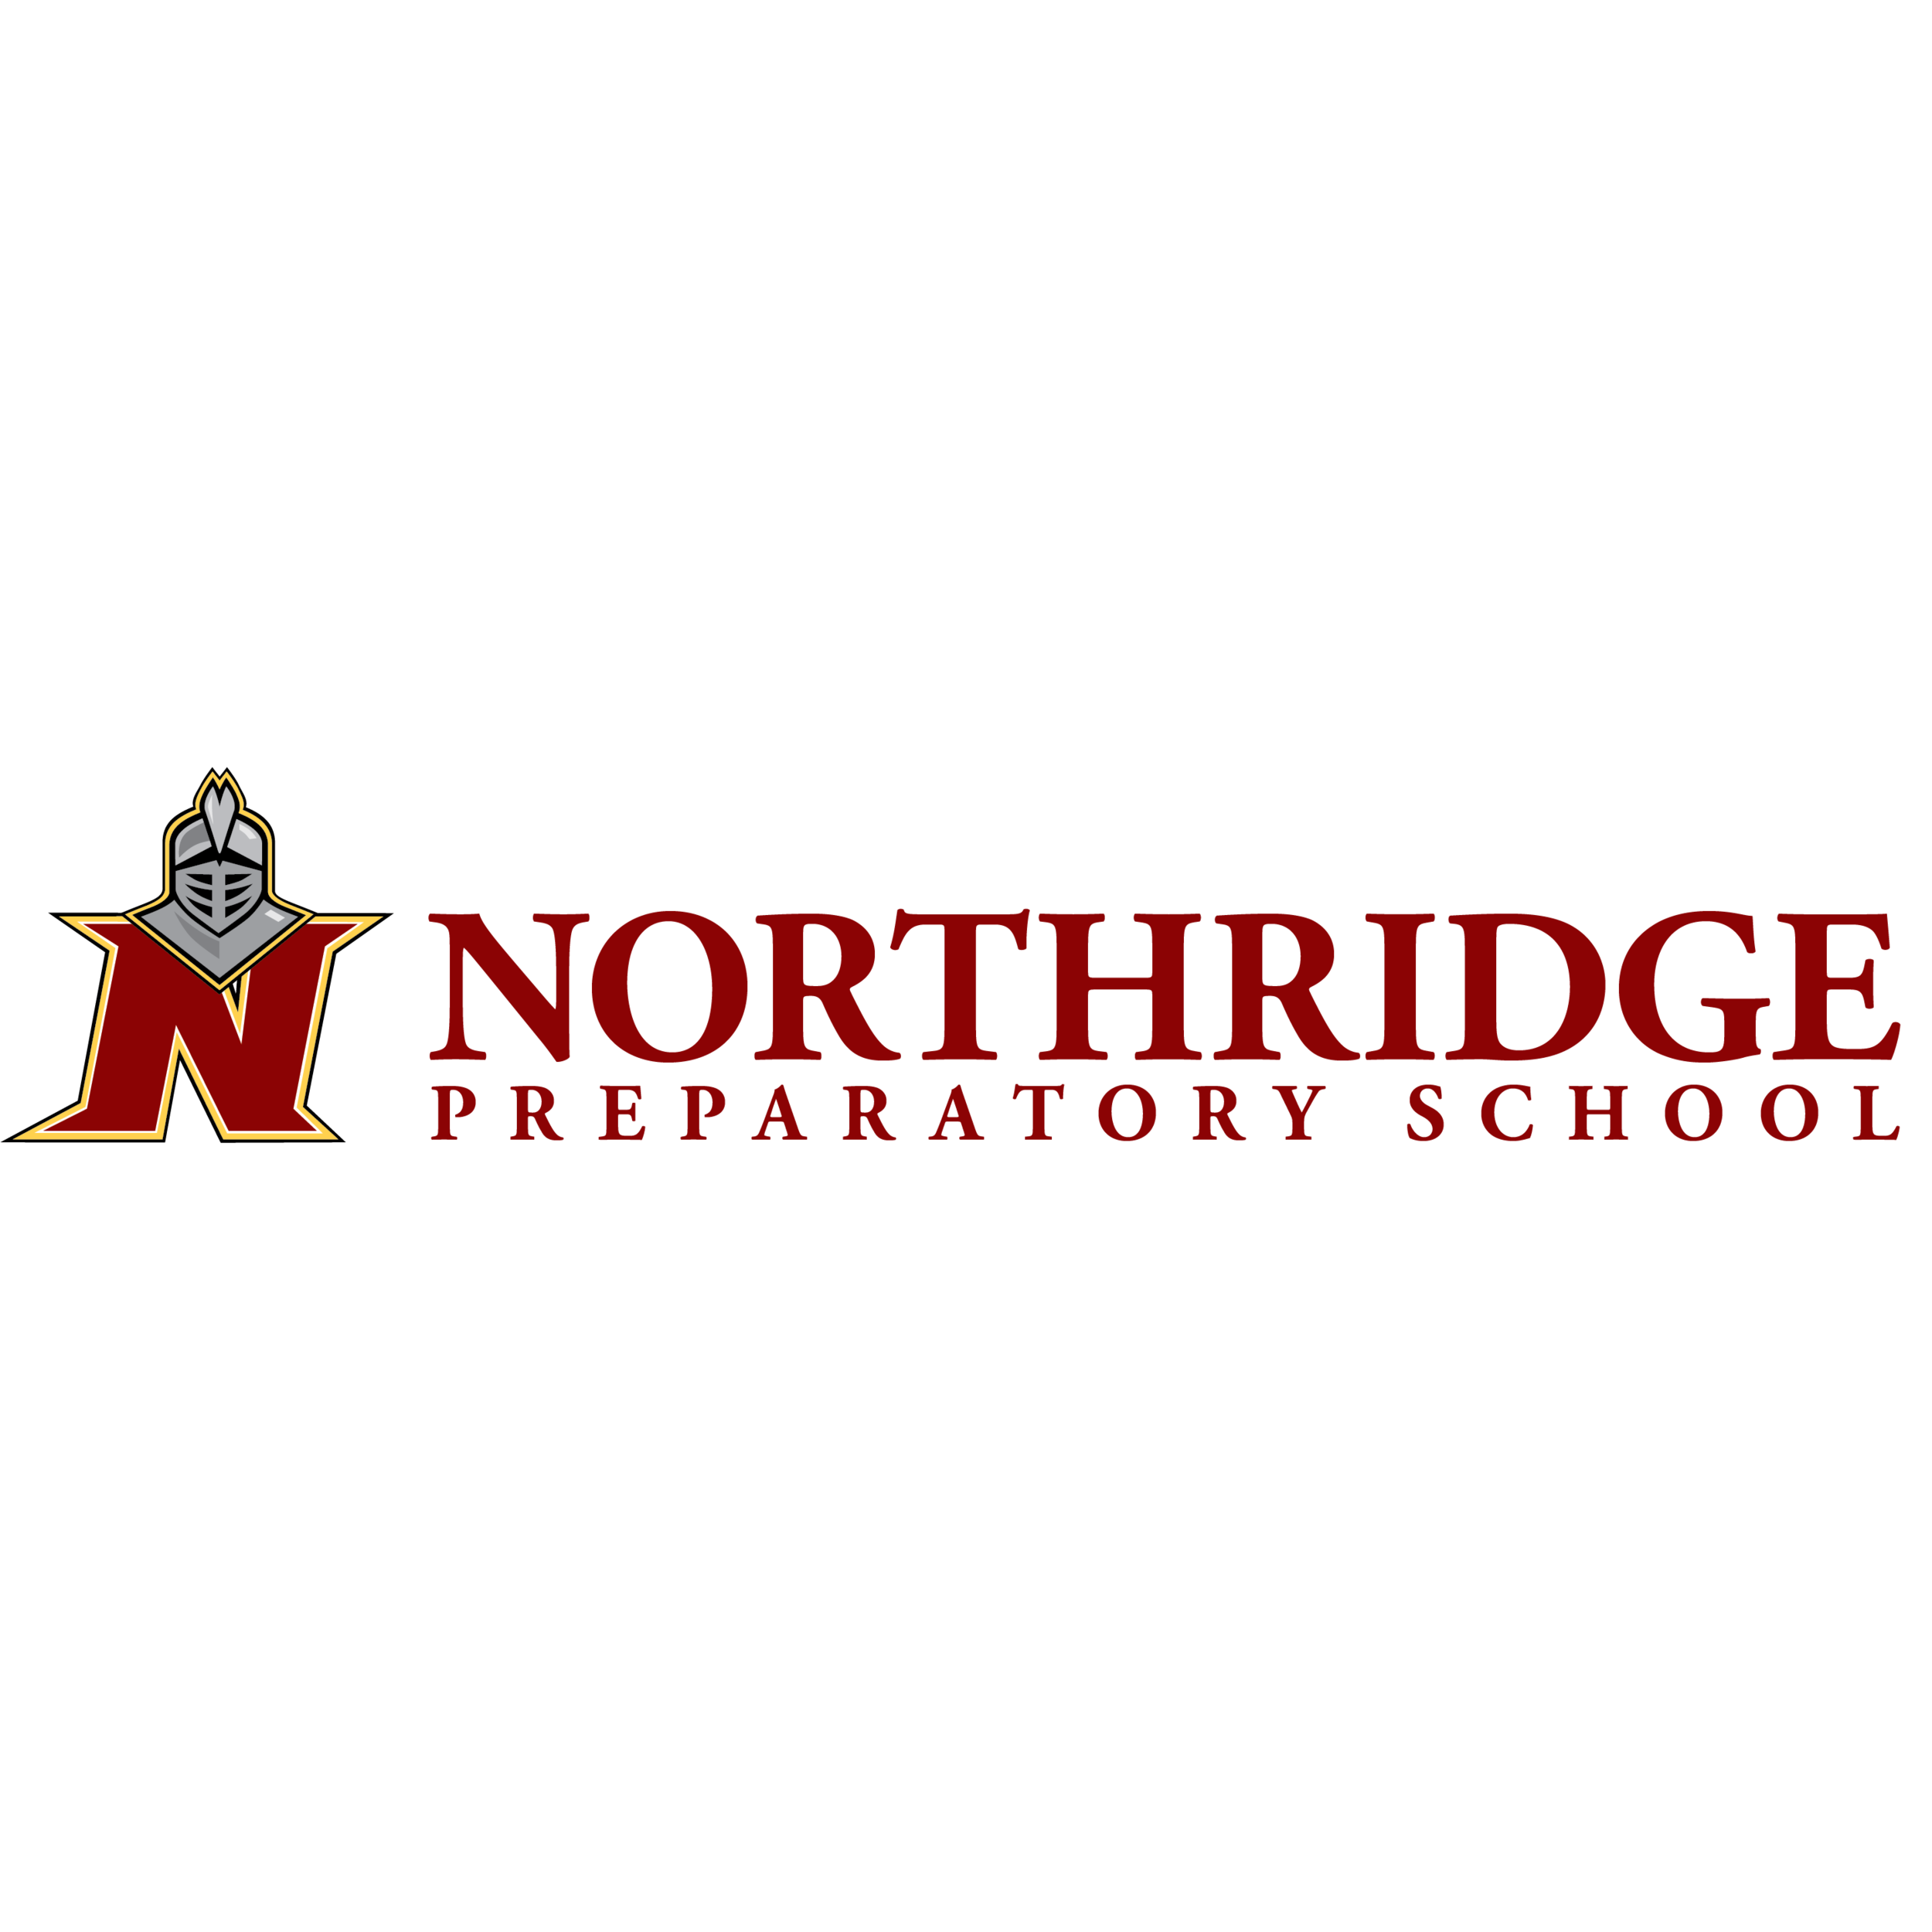 Northridge Preparatory School Logo.png